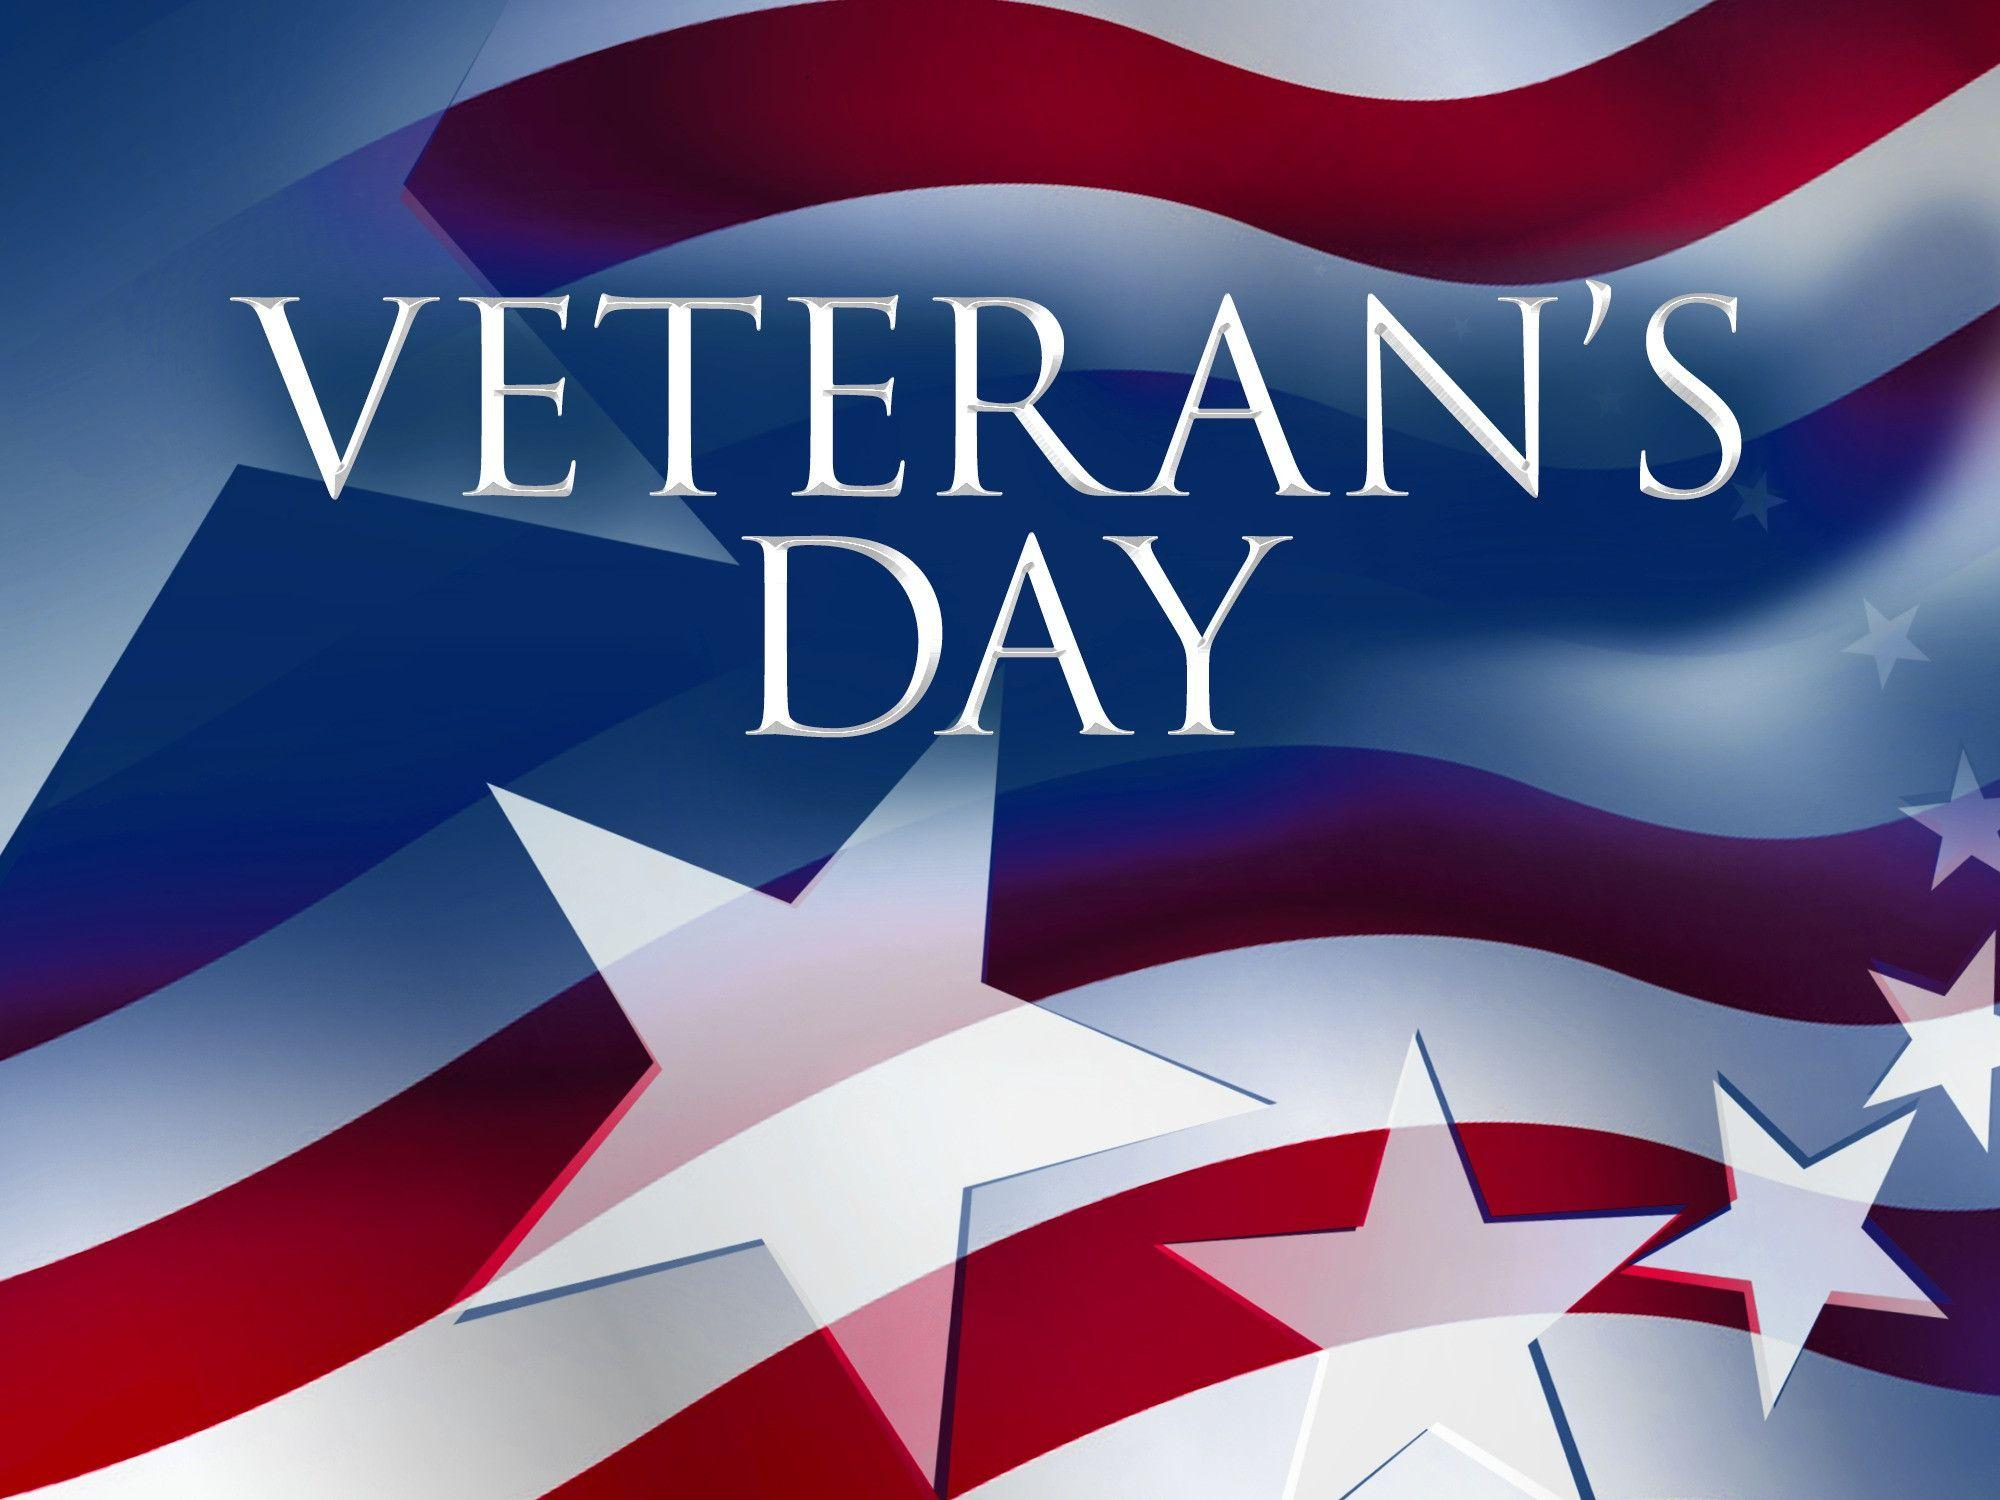 Veterans Day 2017 Wallpaper Fresh Veterans Day Freebies 2016 ...